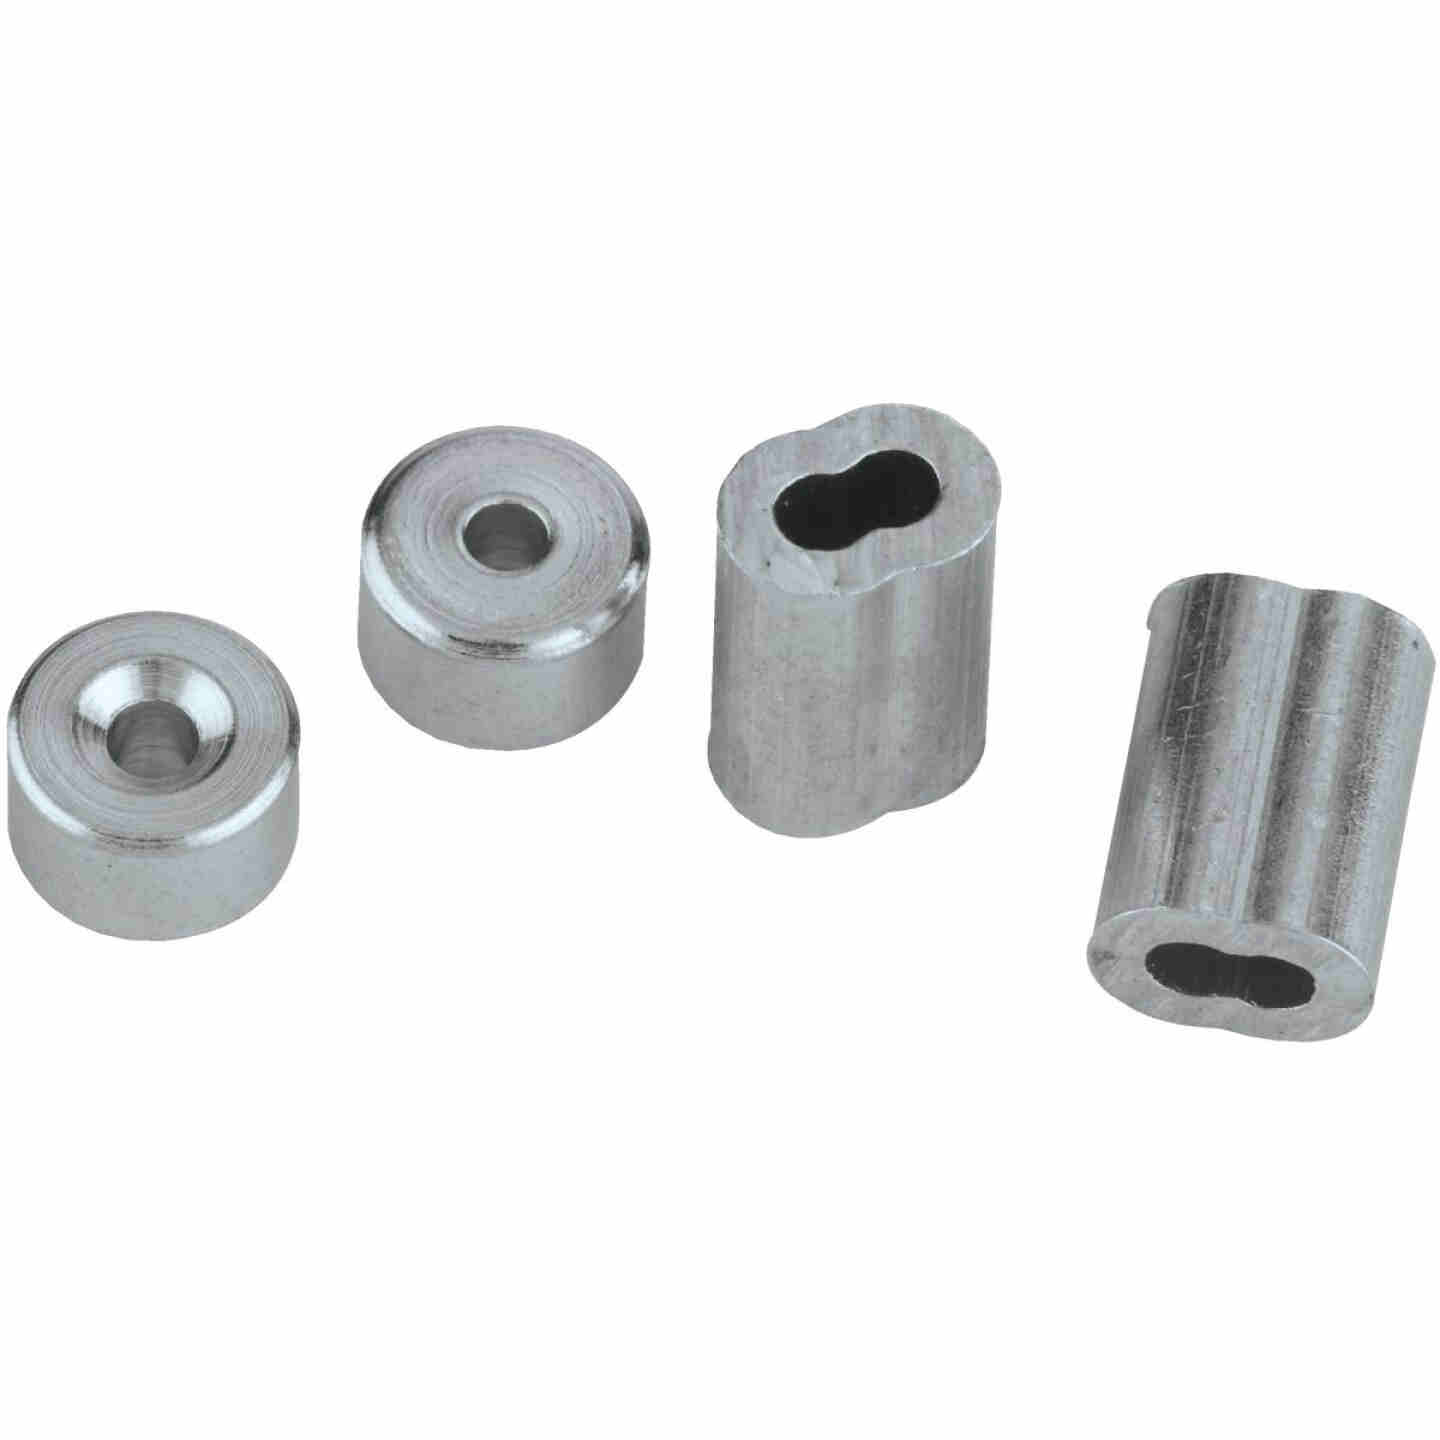 """Prime-Line Cable Ferrules And Stops, 1/16"""", Aluminum Image 3"""